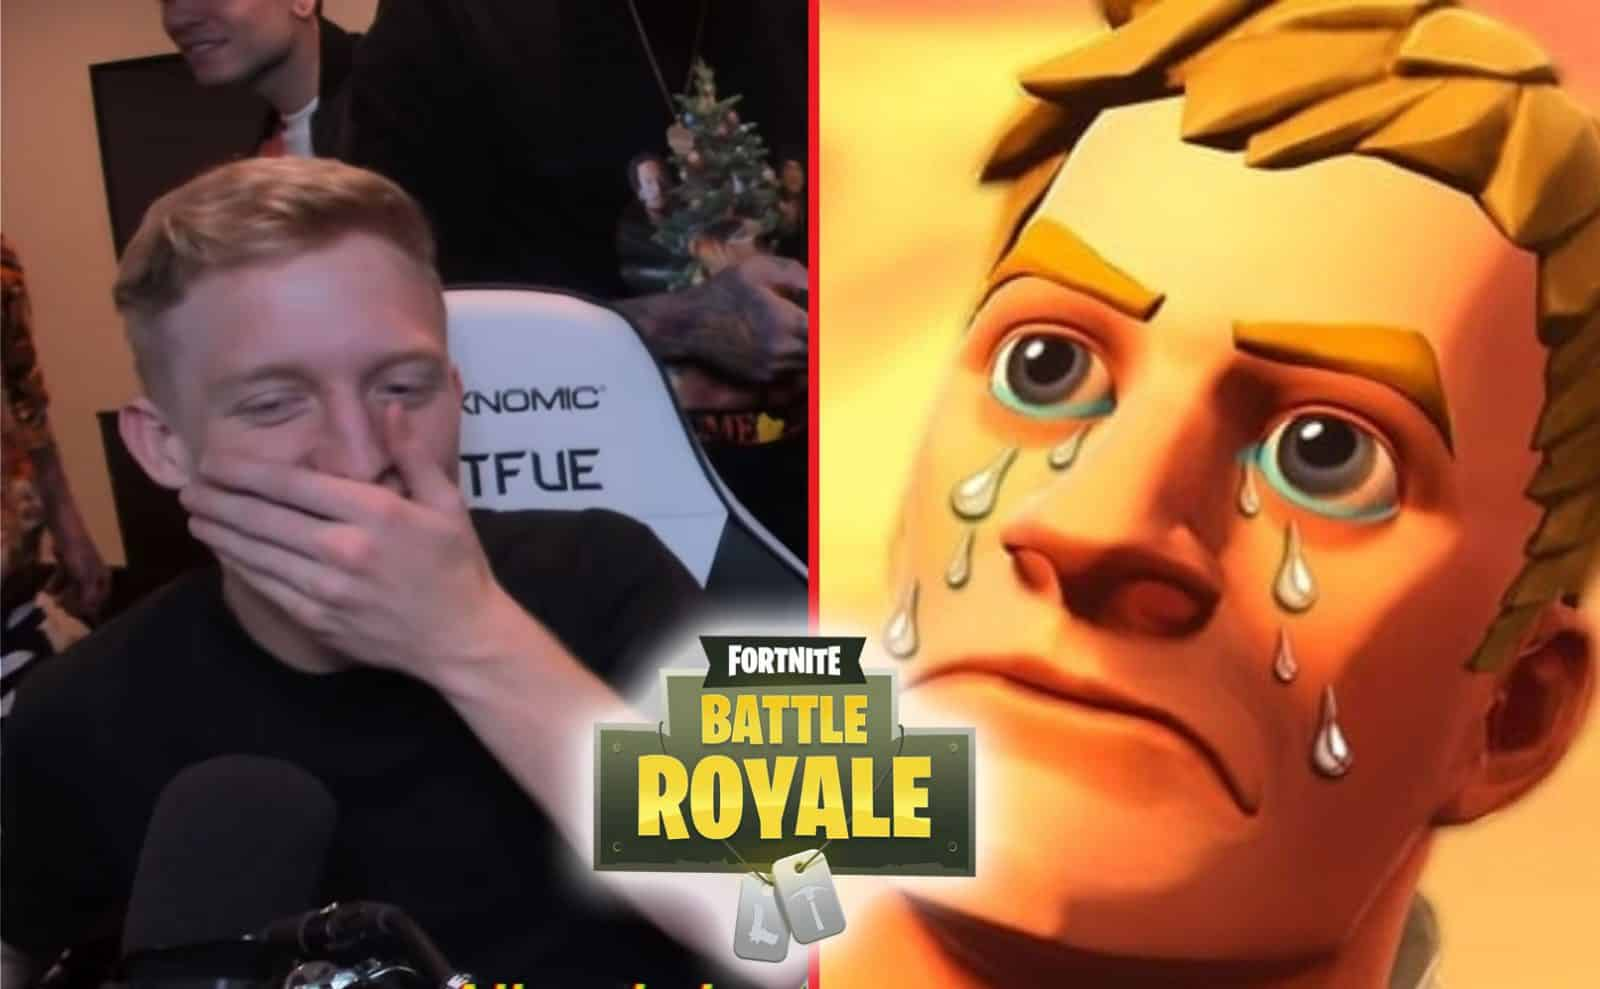 Tfue Not Enjoying The New Season. Wants Things Removed.